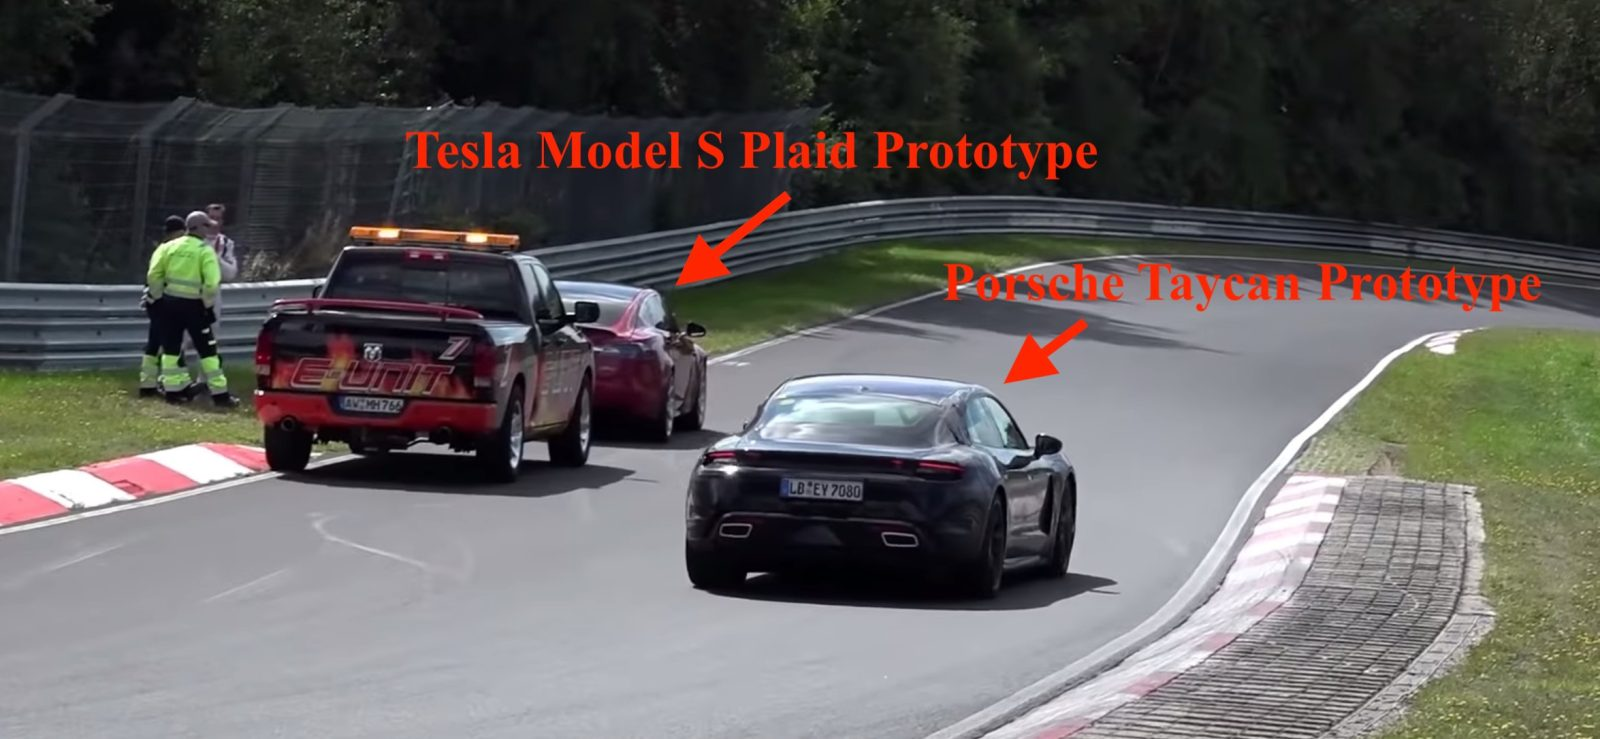 Tesla Model S prototype breaks down, Porsche Taycan drives by, and TSLA shorts go crazy